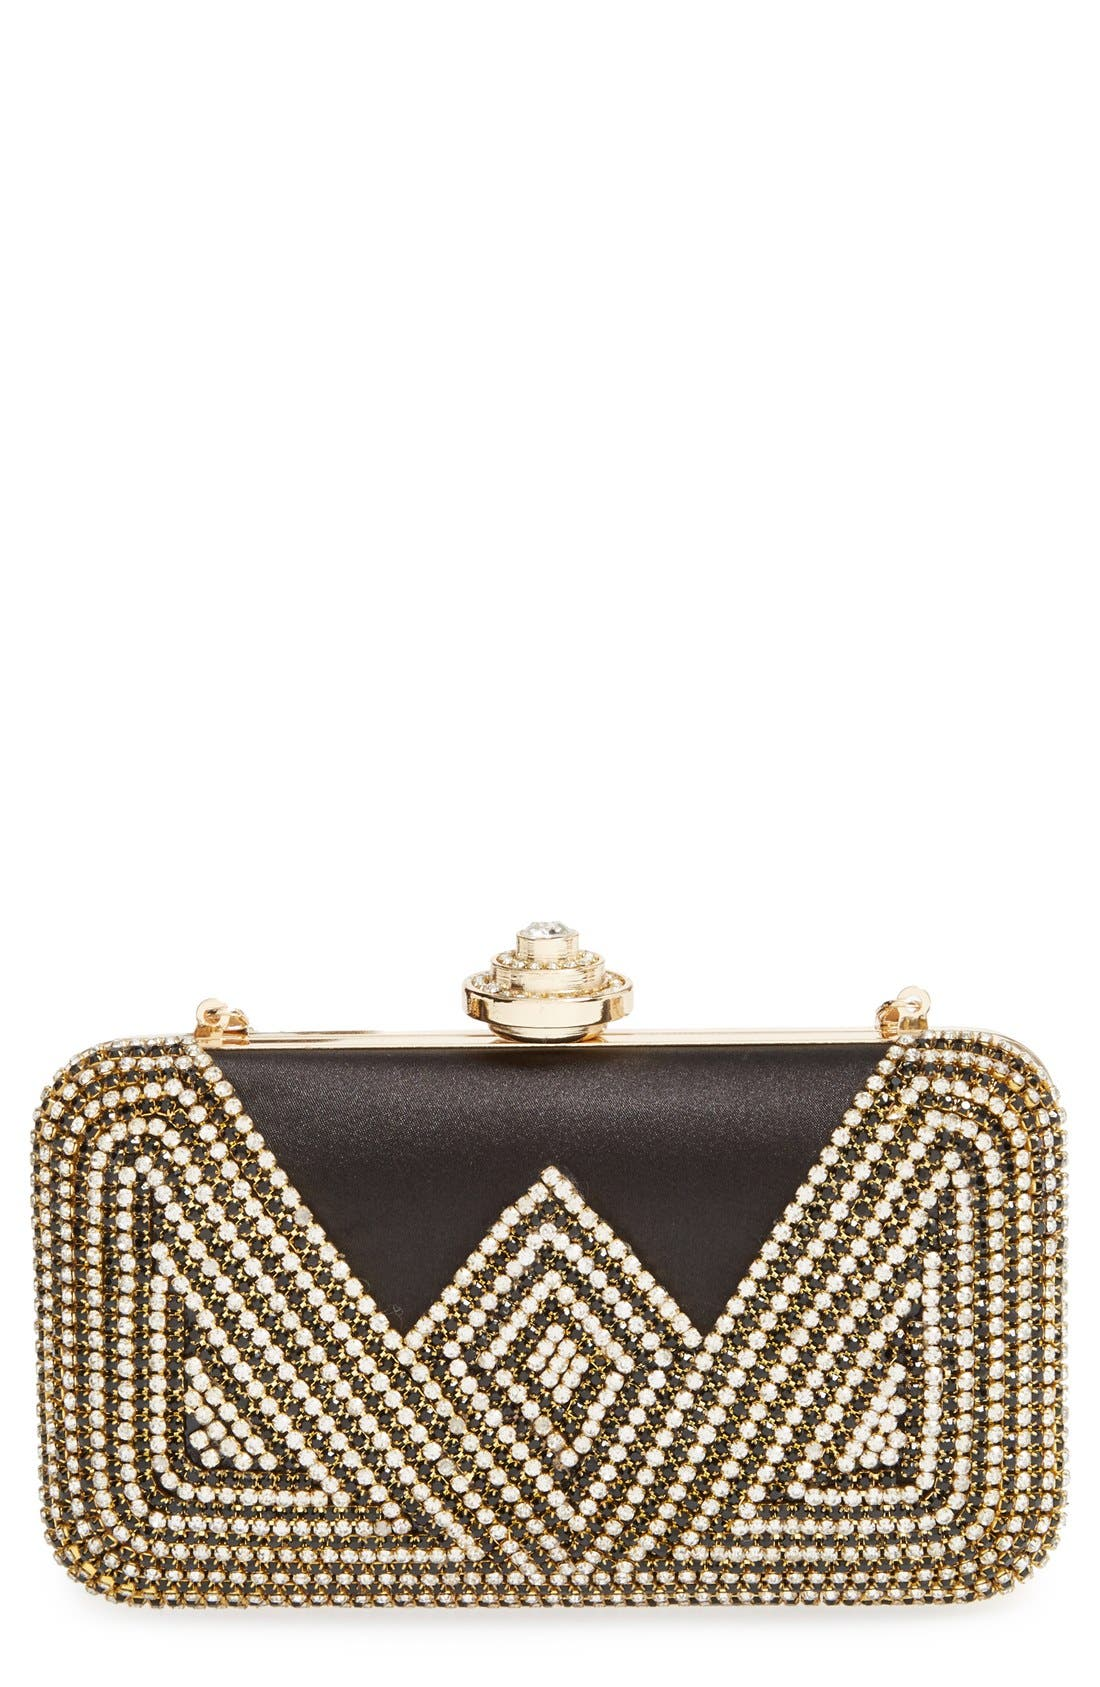 Alternate Image 1 Selected - Natasha Couture 'Deco' Crystal Clutch